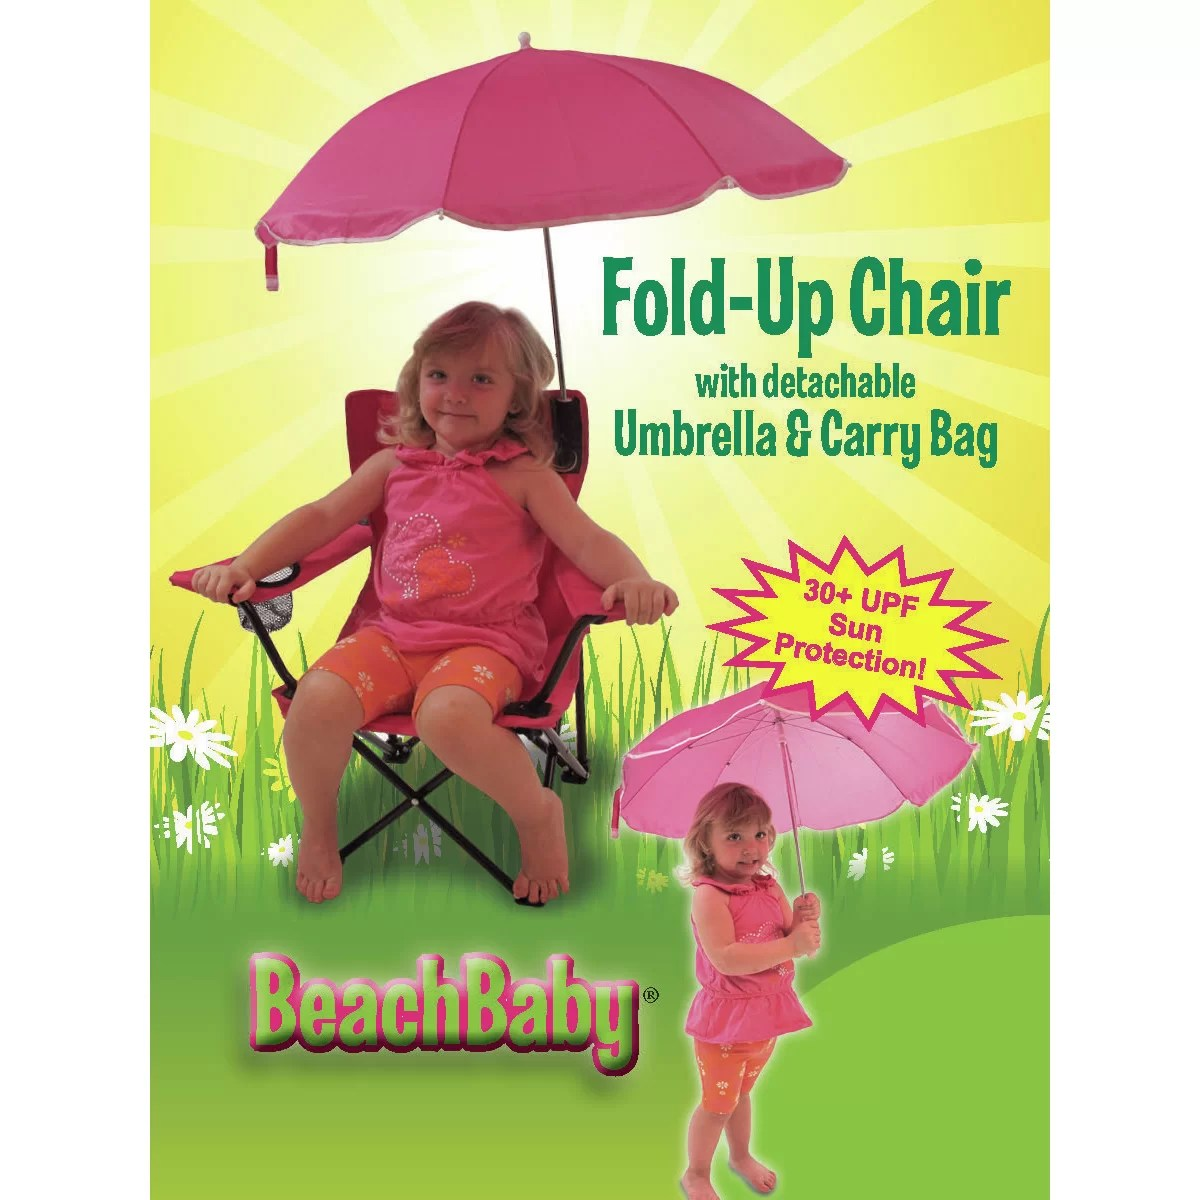 kids camp chair with umbrella plush leather desk camping cup holder wayfair